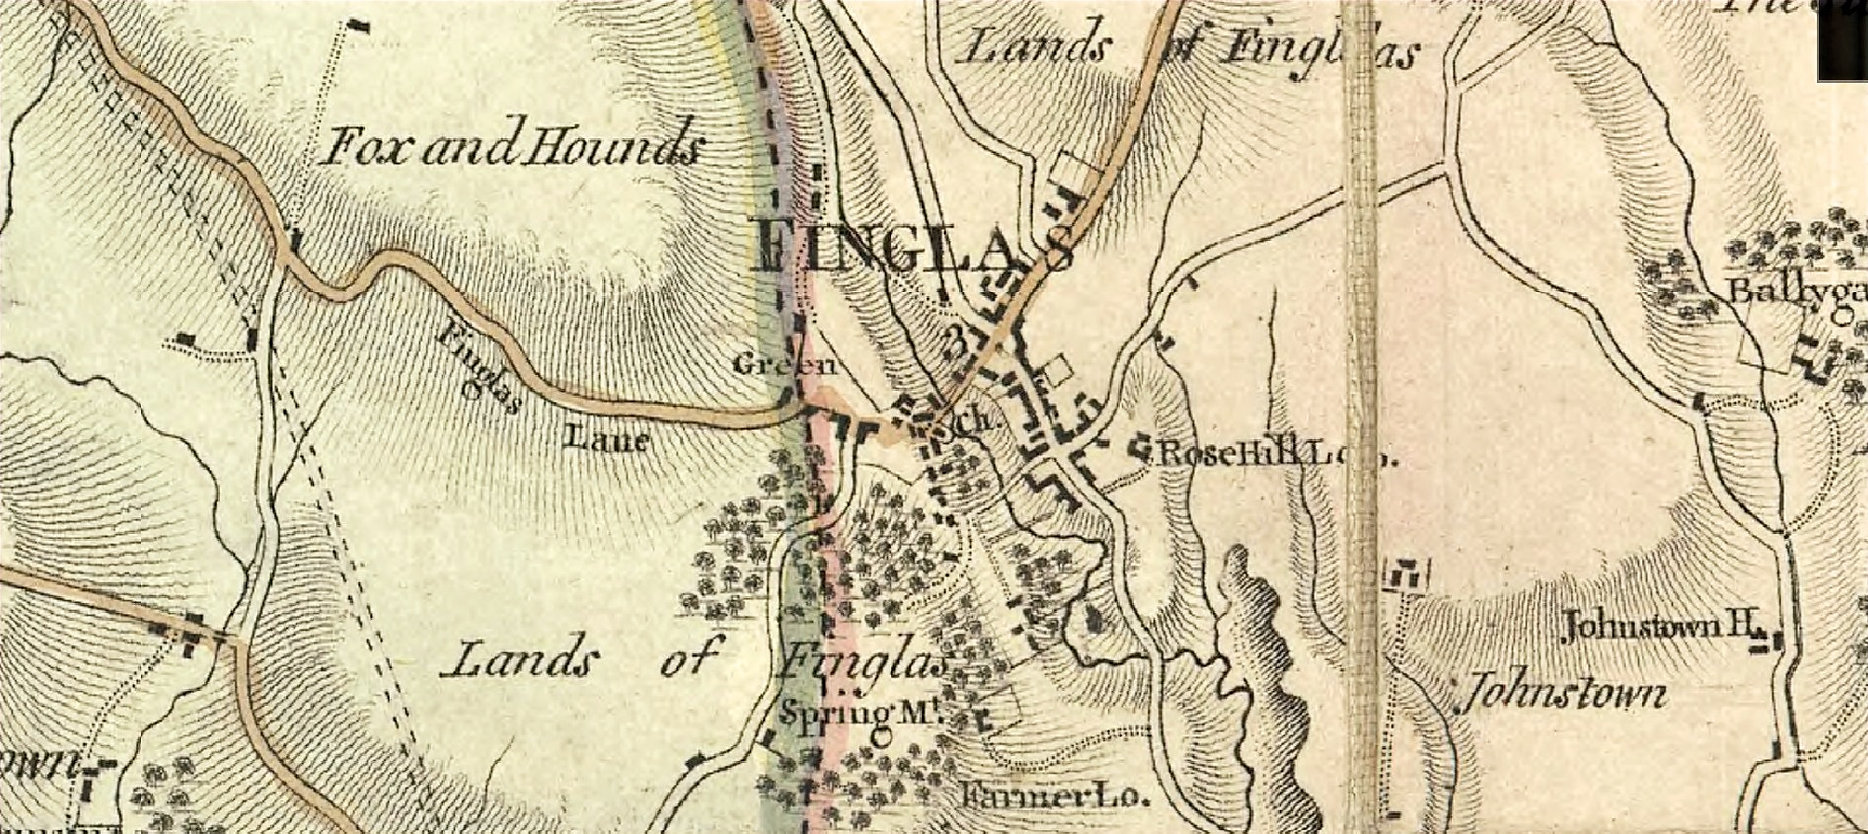 1816 Old Map Of Finglas